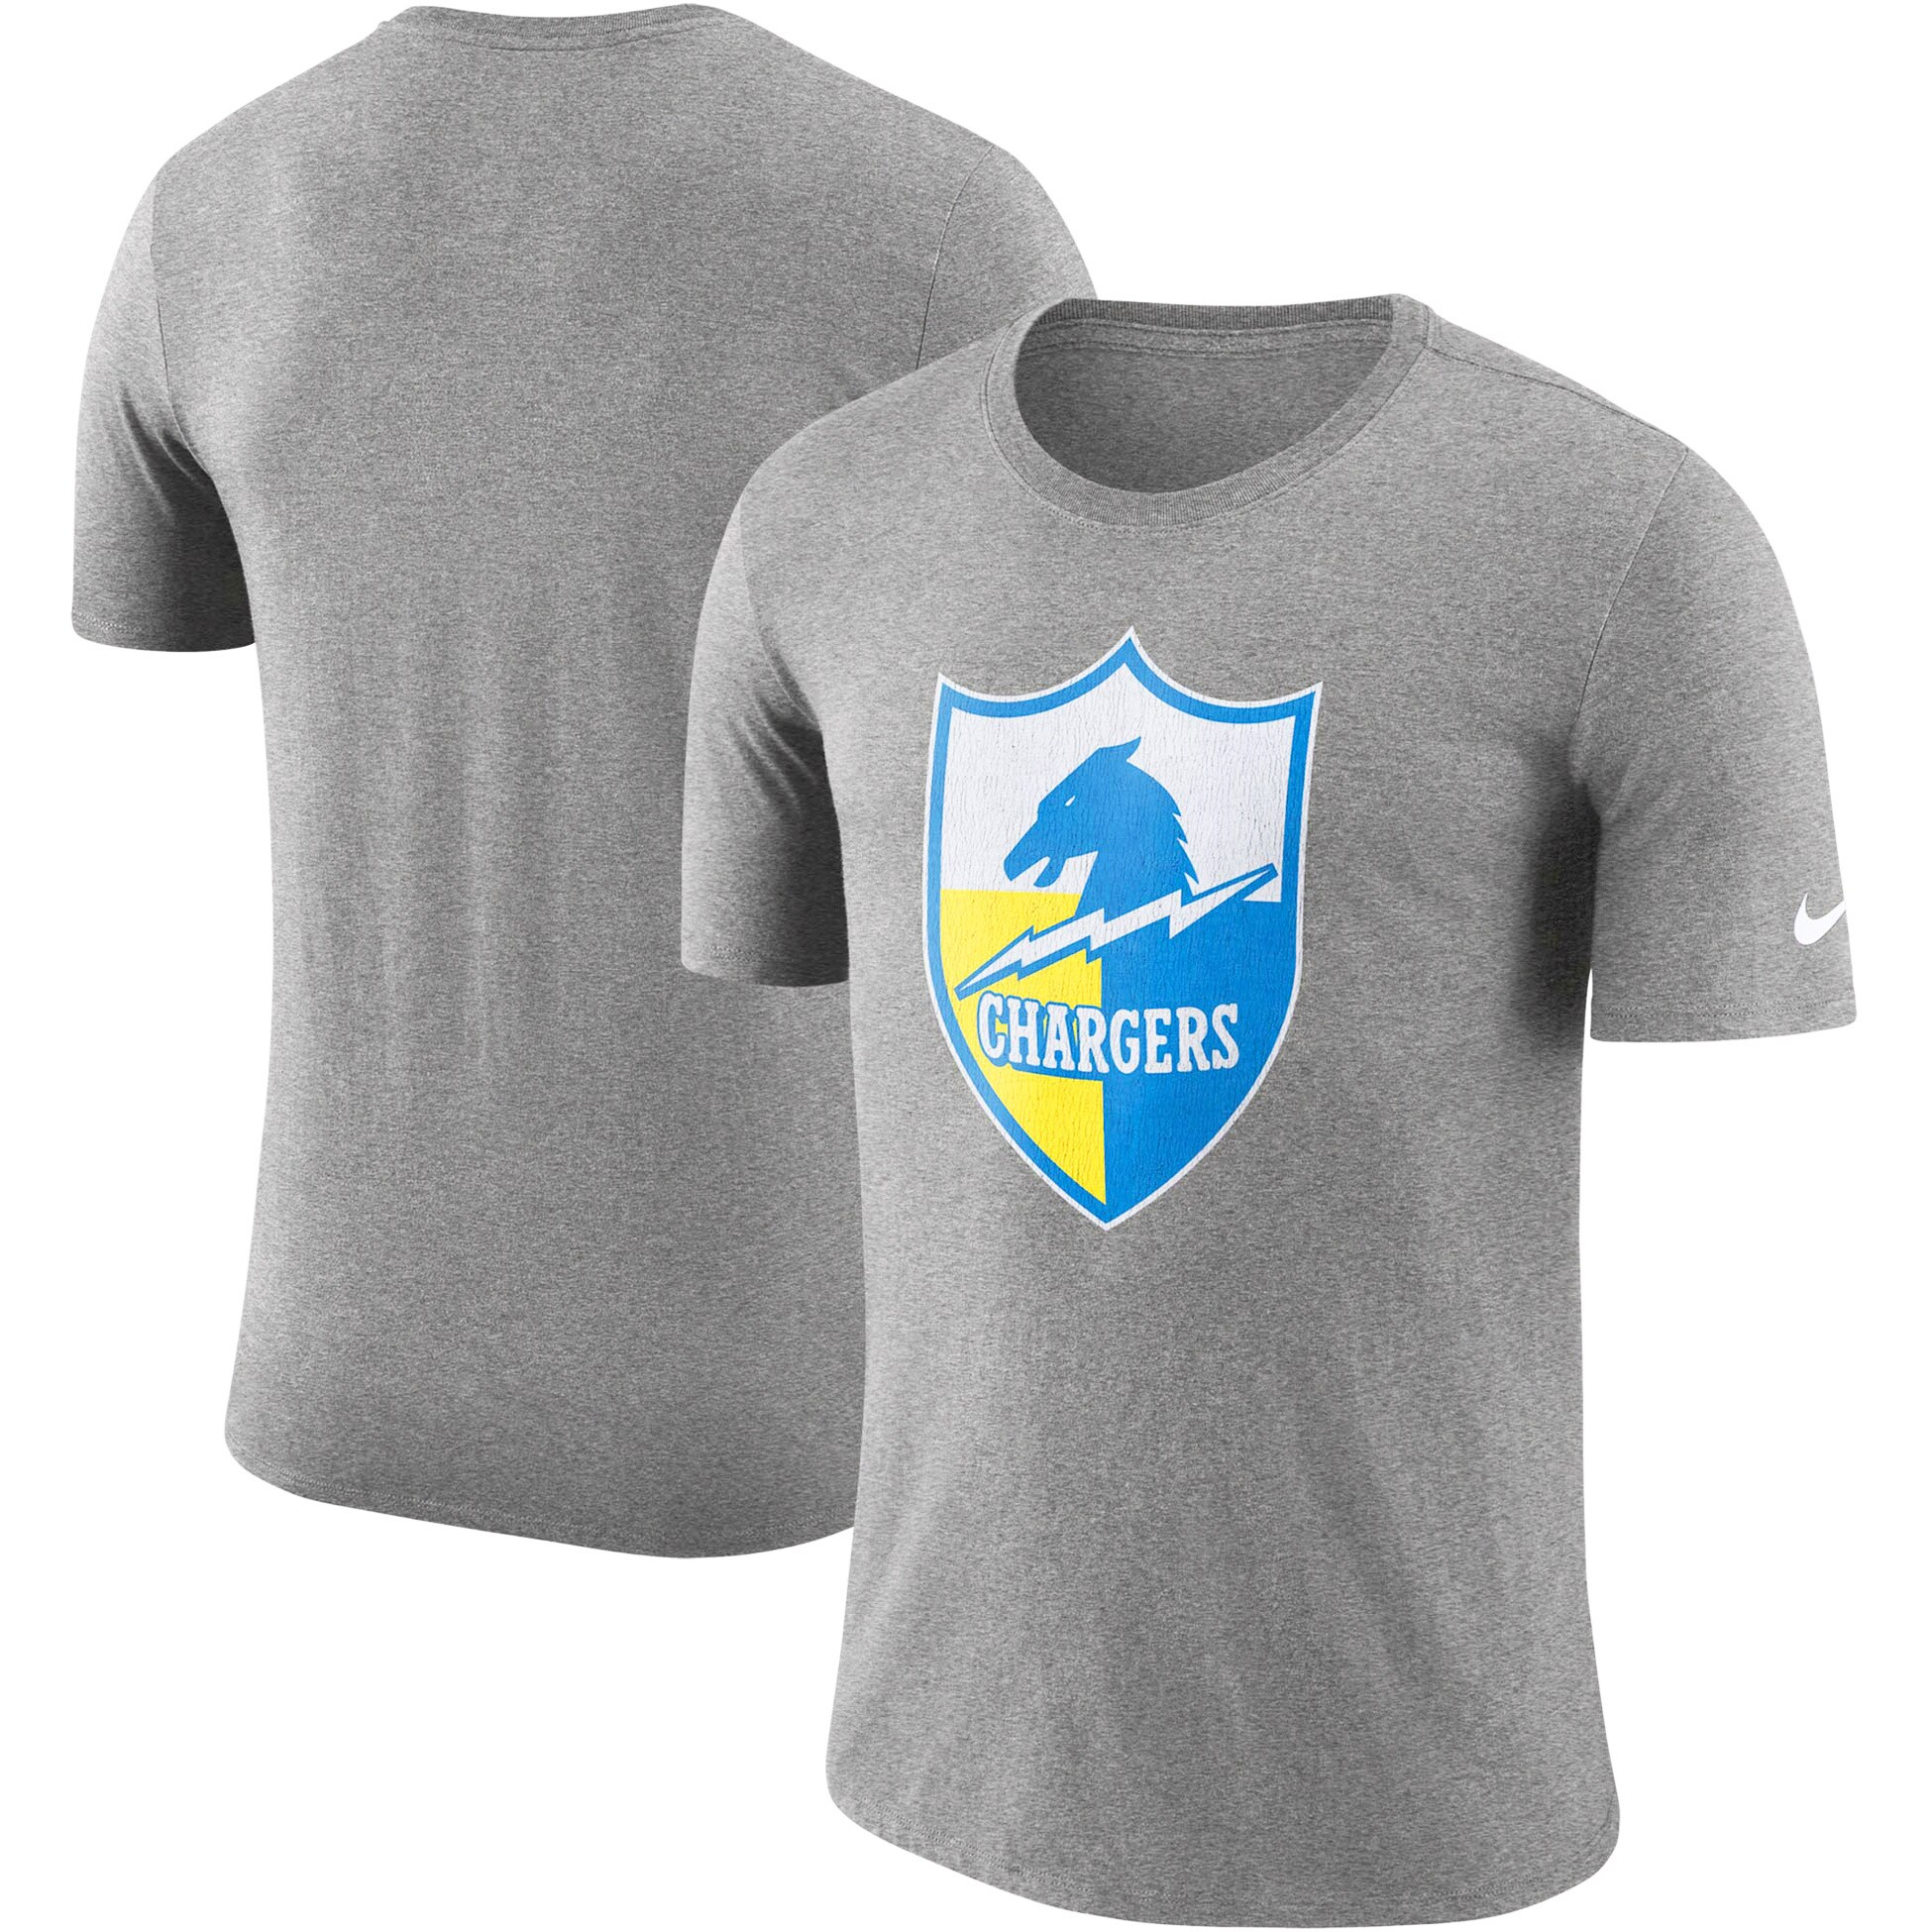 Los Angeles Chargers Nike Historic Tri-Blend Crackle T-Shirt - Heathered Gray